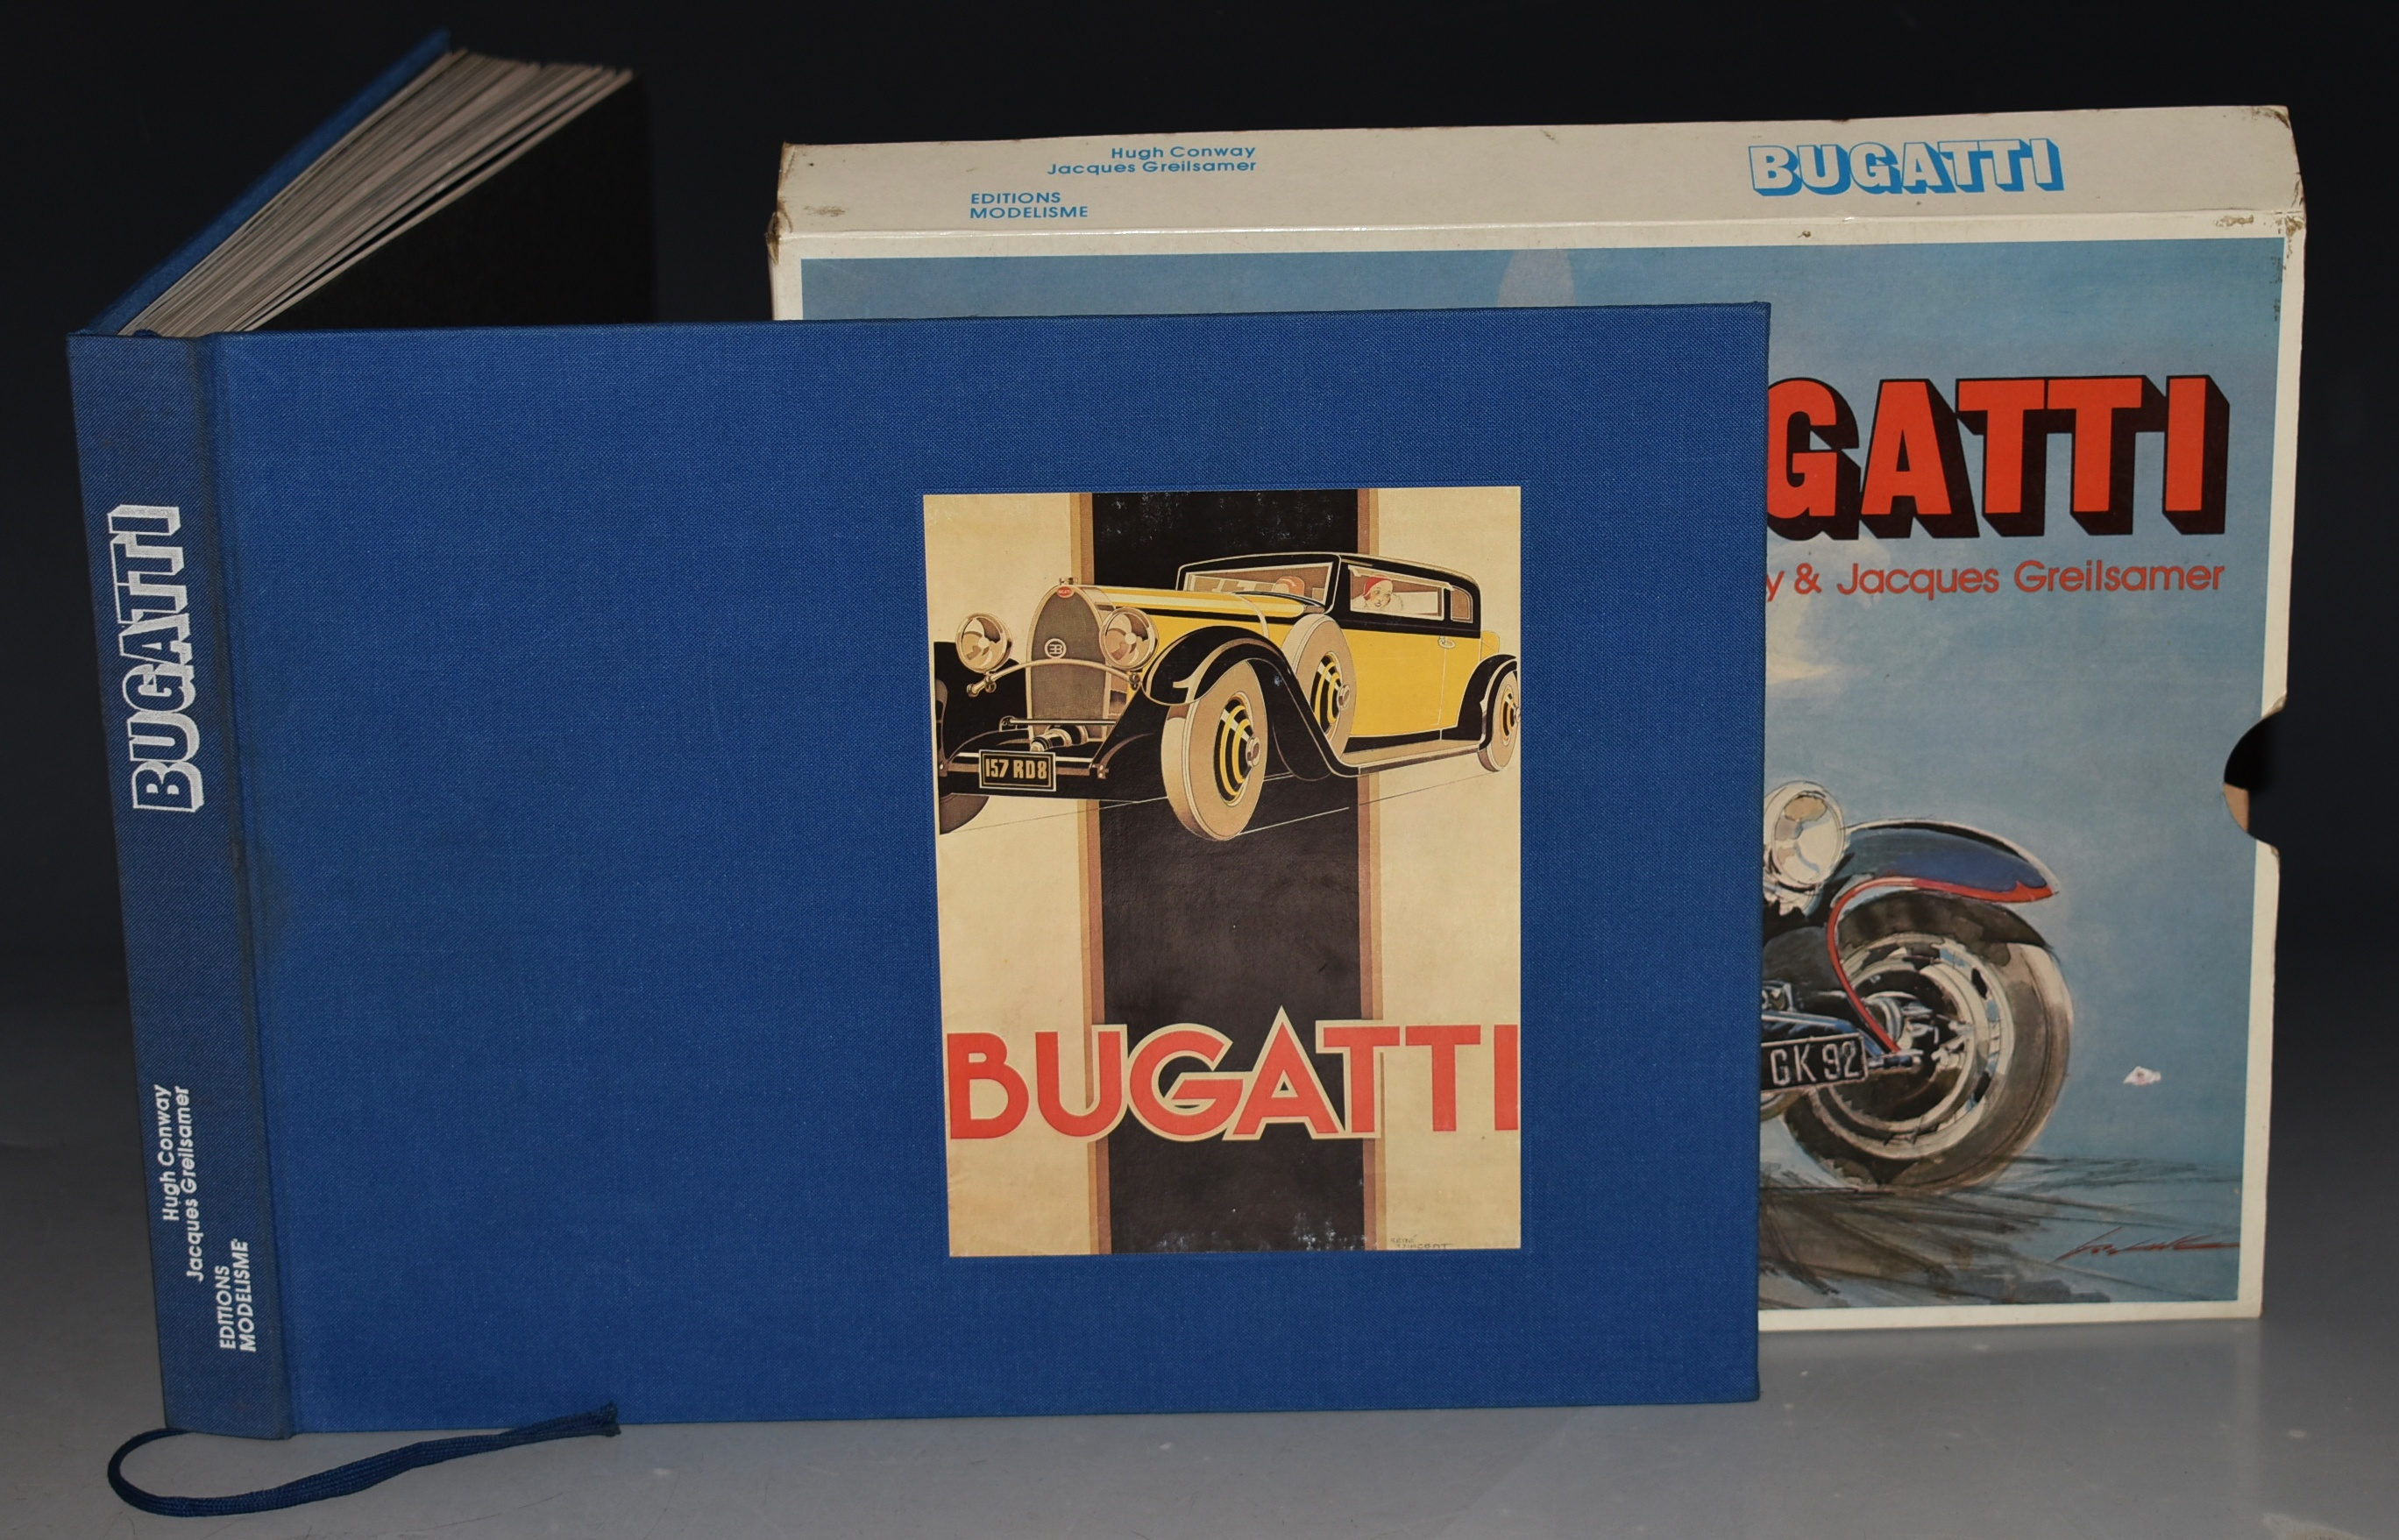 Image for Bugatti Foreword by Le Baron de Rothschild